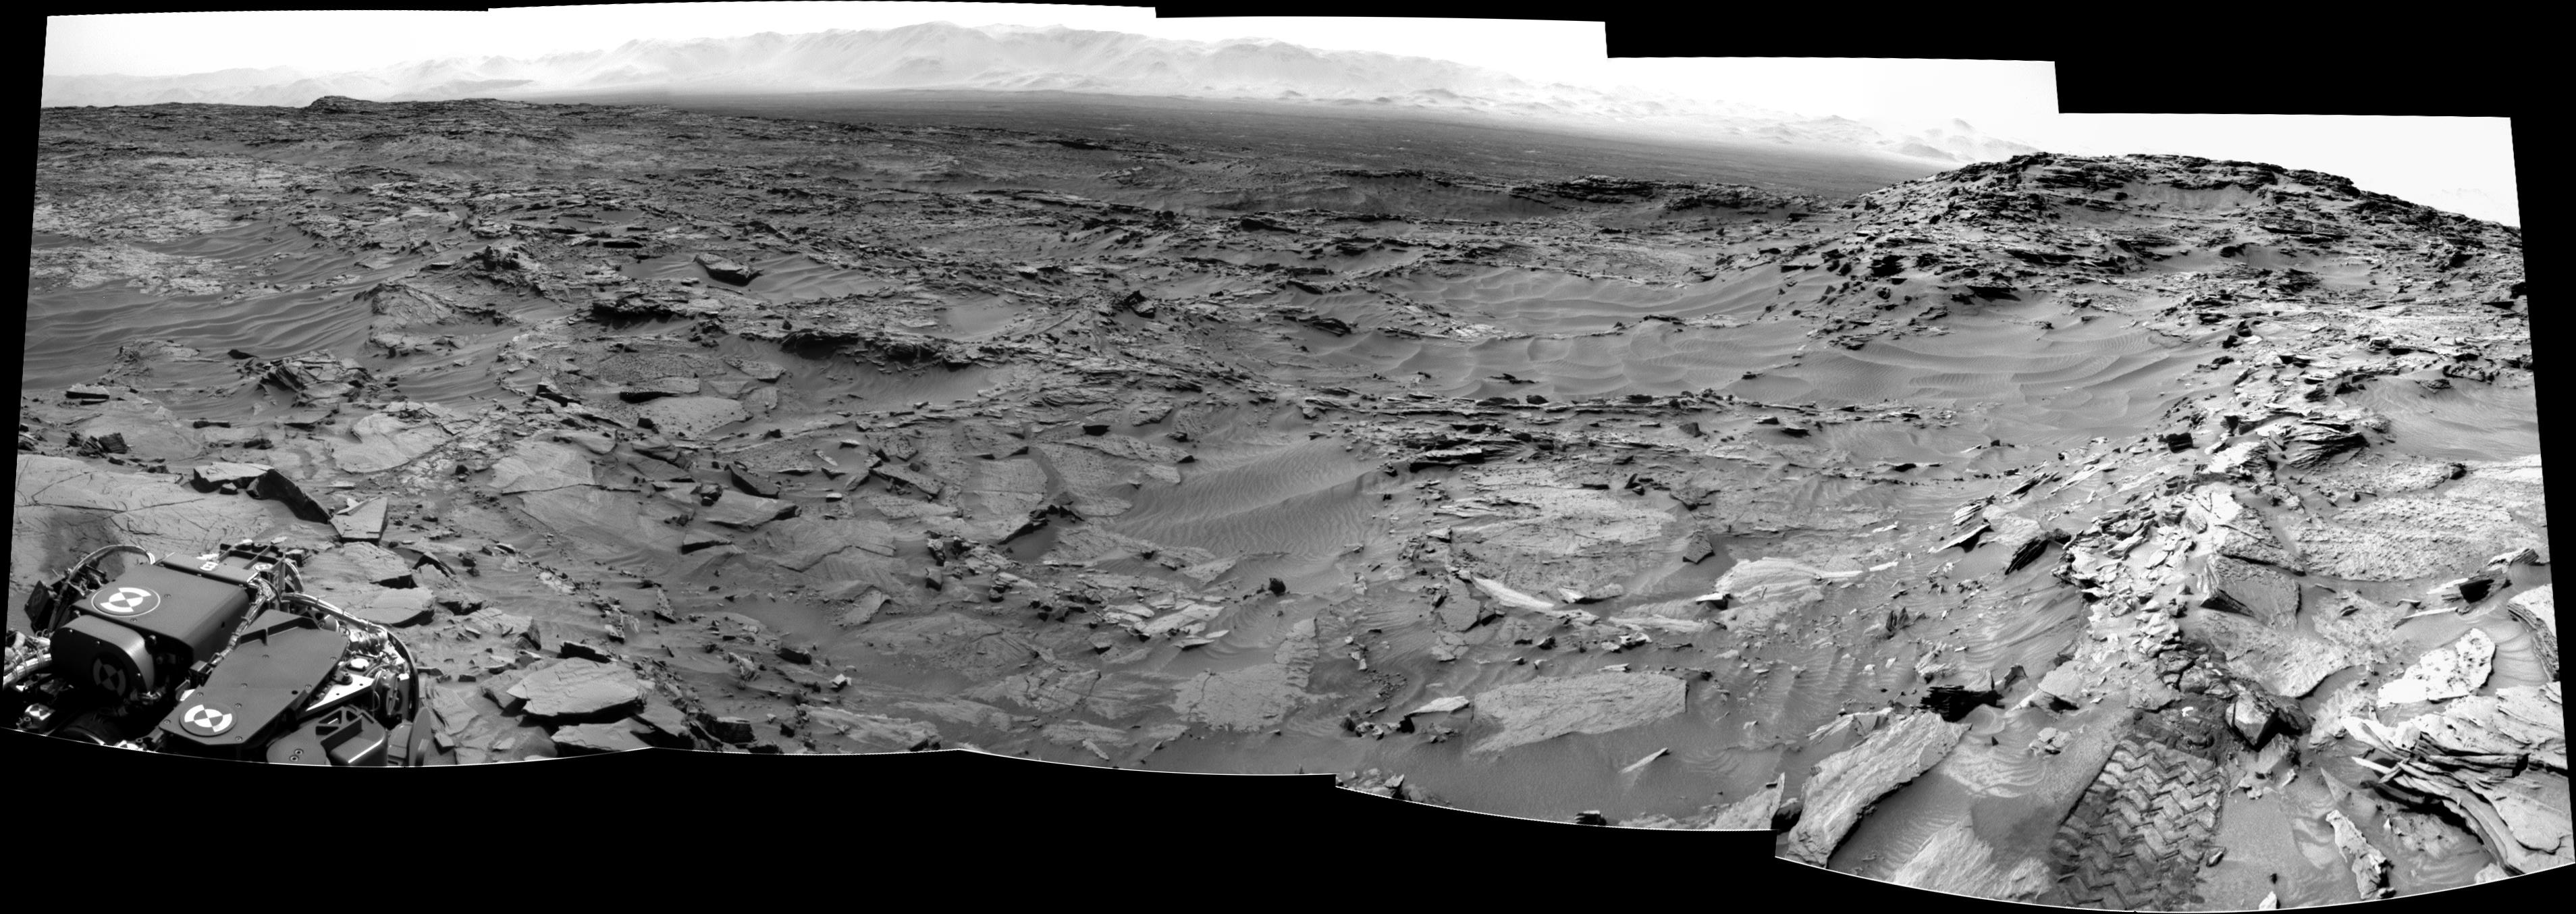 panoramic curiosity rover view b&w 2 - sol 1344 - was life on mars